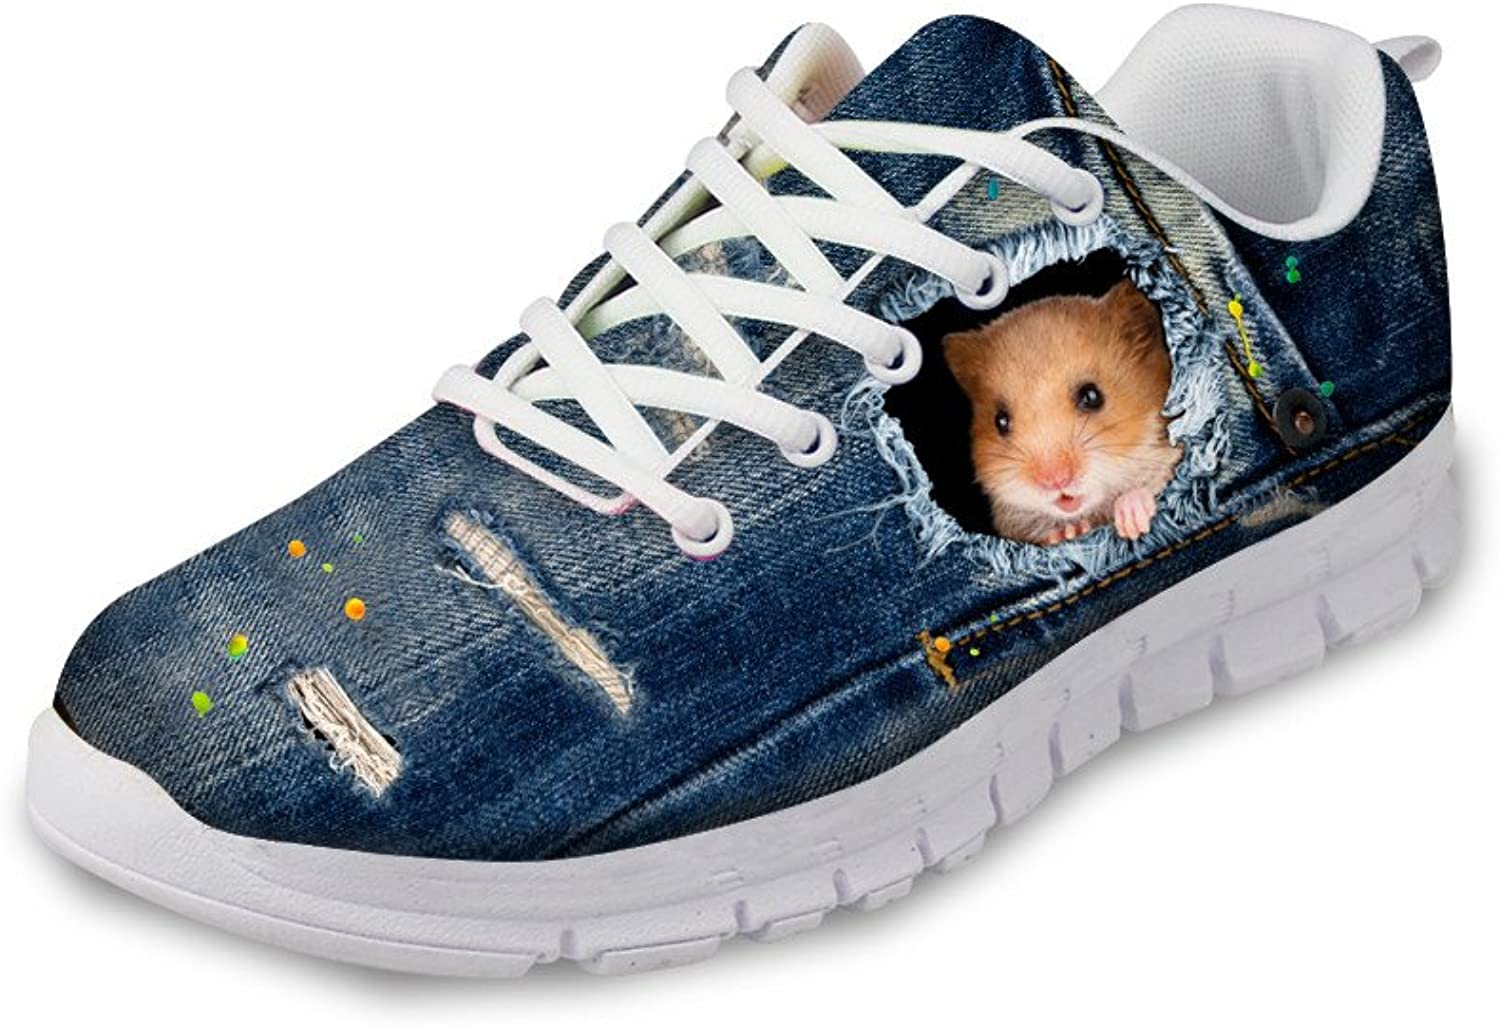 Chaqlin Denim bluee Running shoes 3D Animals Pattern Women Men Flat Mesh Sneakers